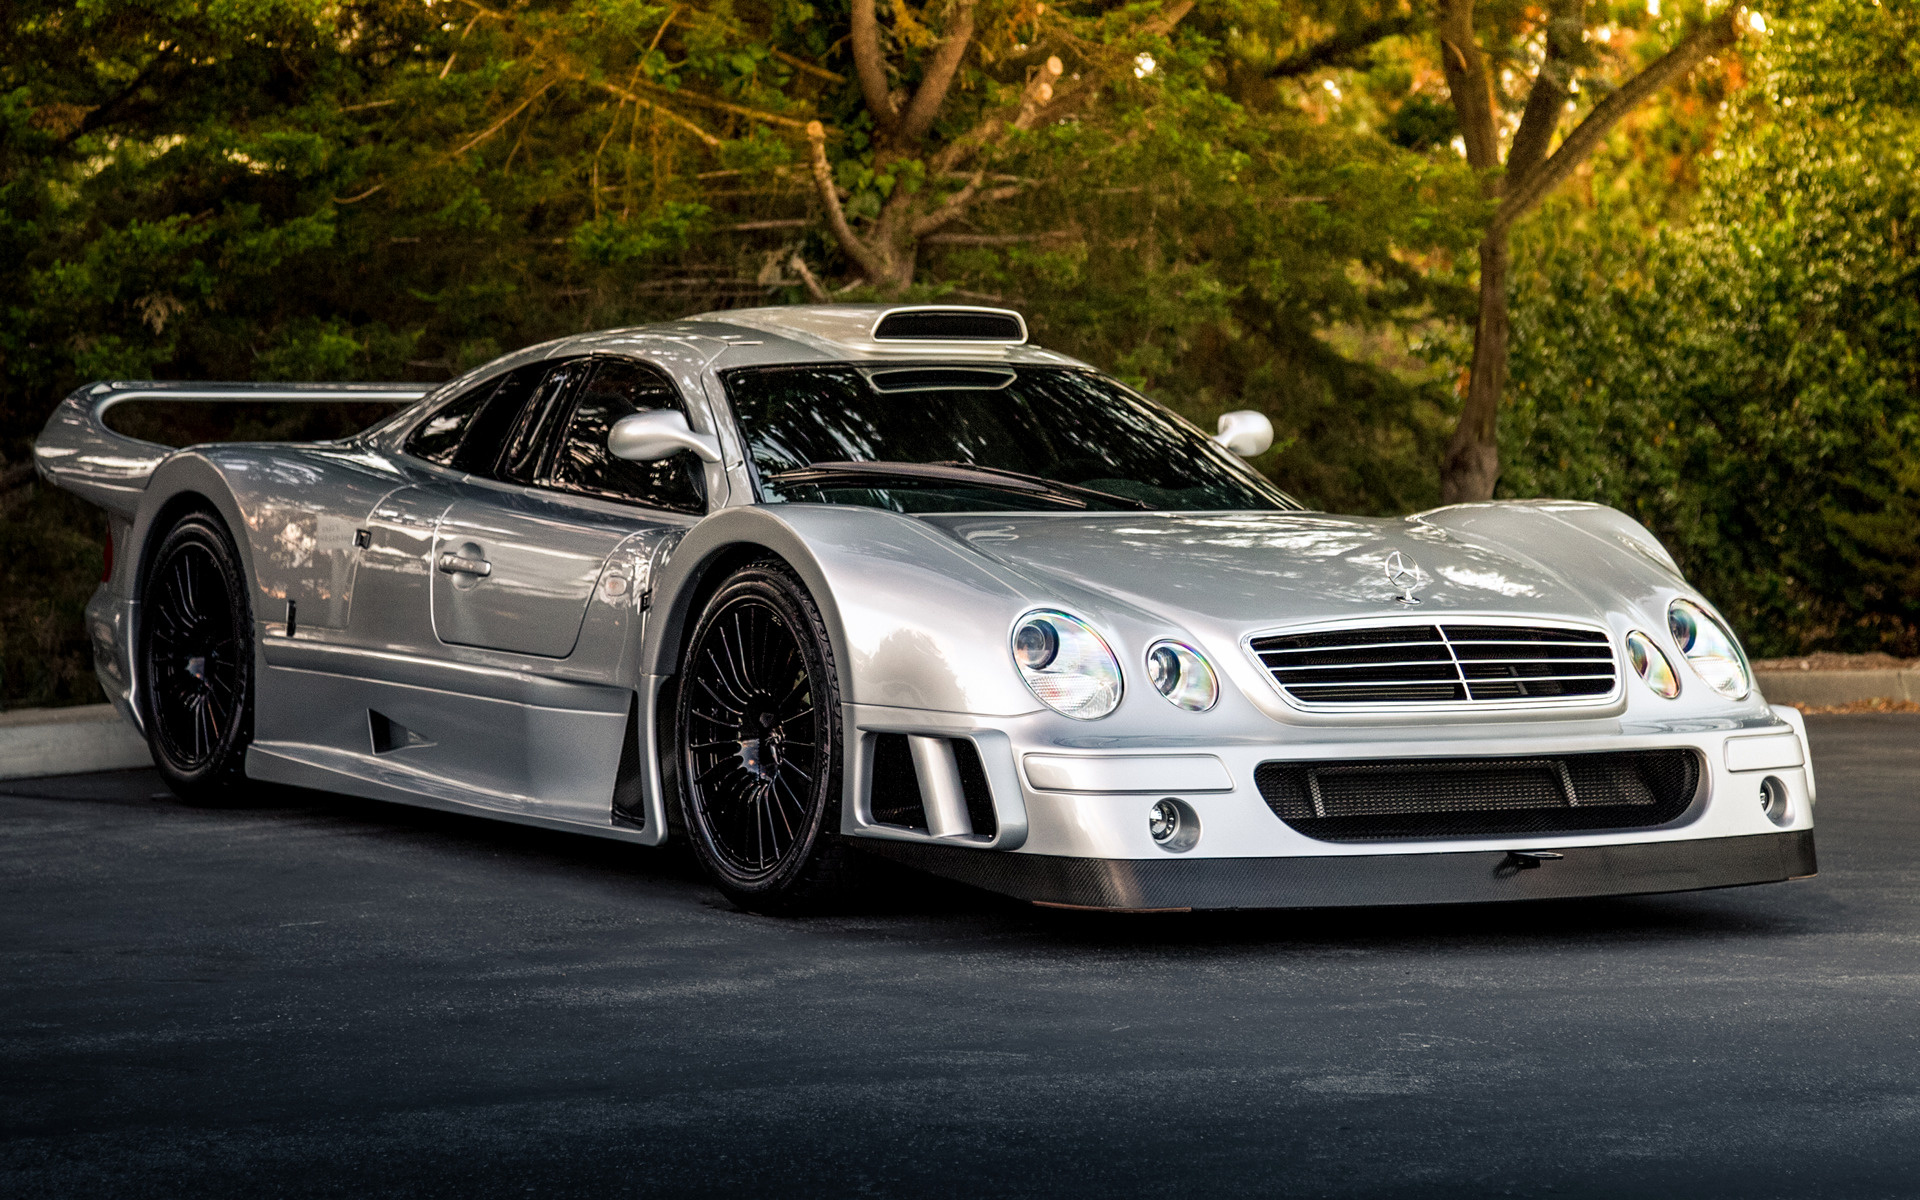 1998 mercedes benz clk gtr road car wallpapers and hd. Black Bedroom Furniture Sets. Home Design Ideas